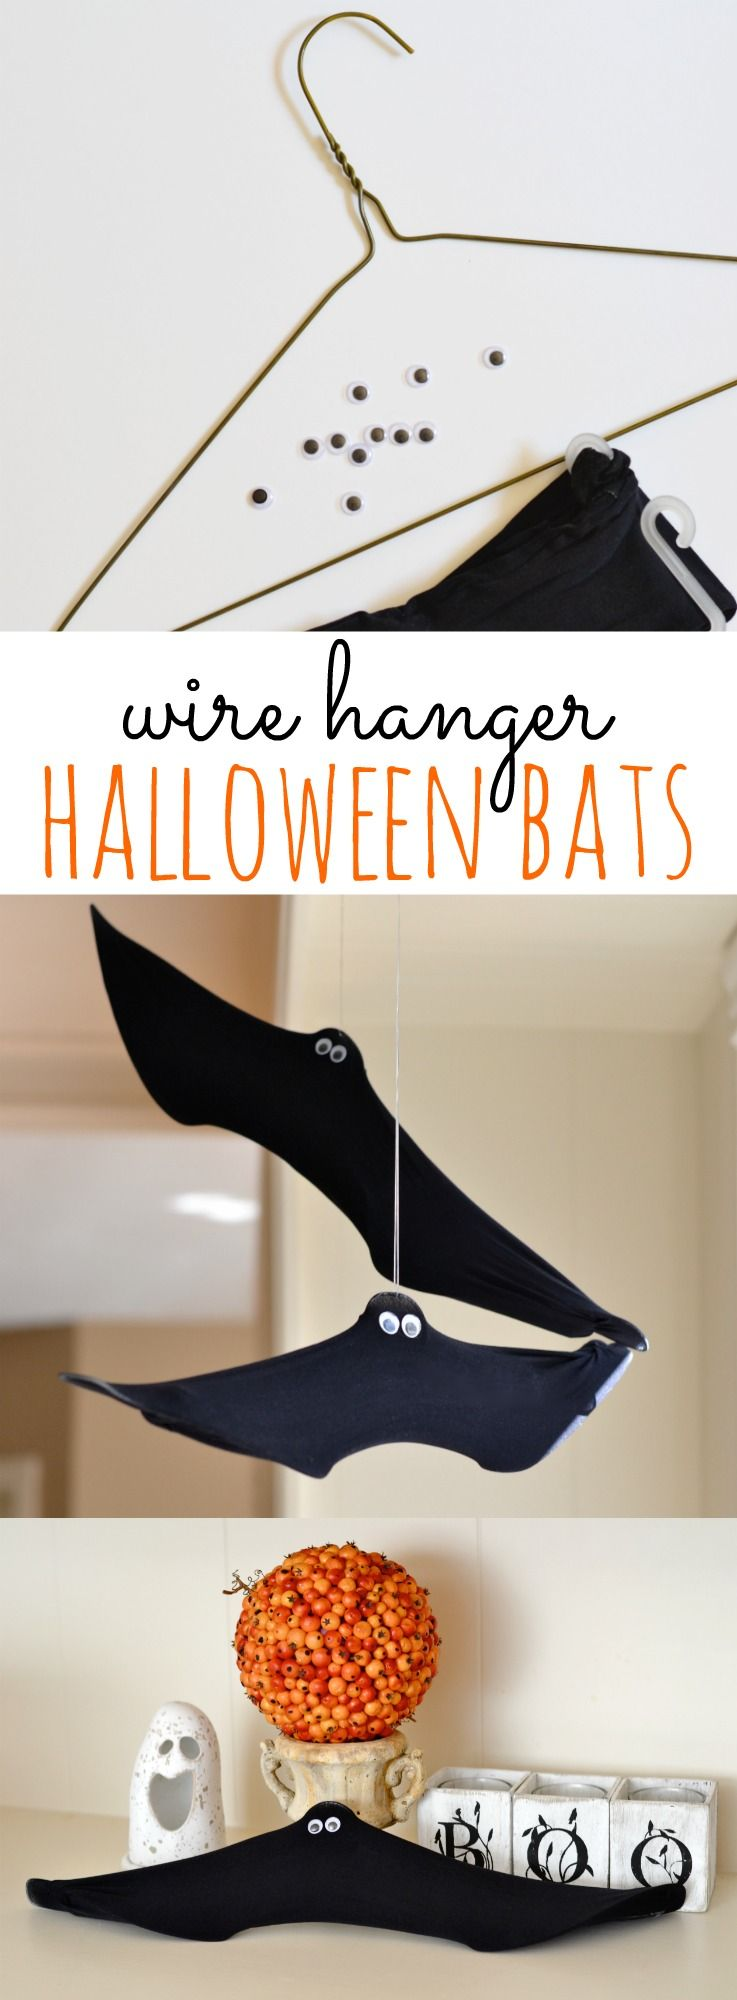 Diy halloween decorations bats - These Wire Hanger Bats Make The Perfect Diy Halloween Decorations They Re Inexpensive